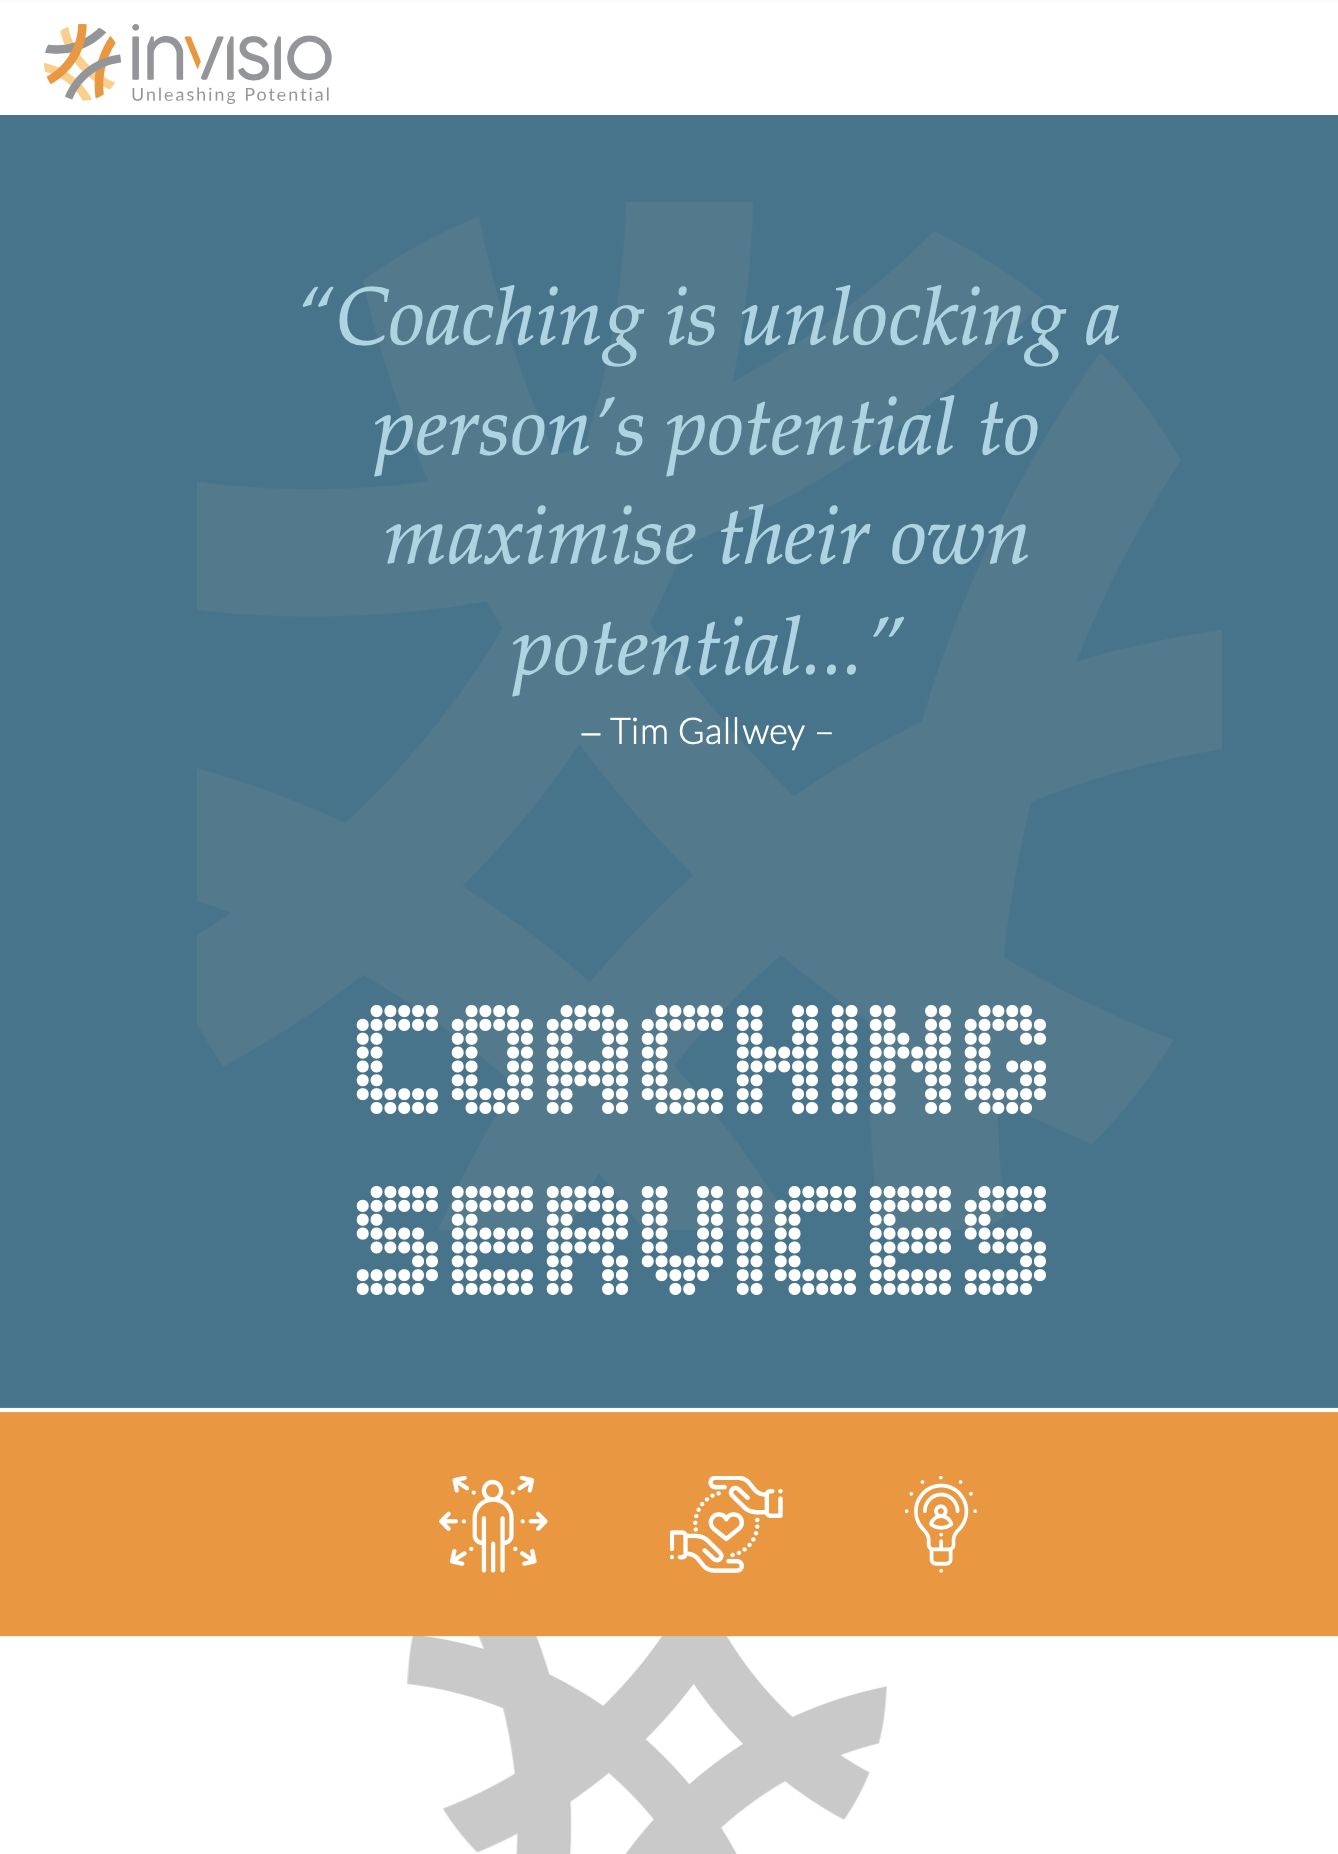 Coaching by Invisio